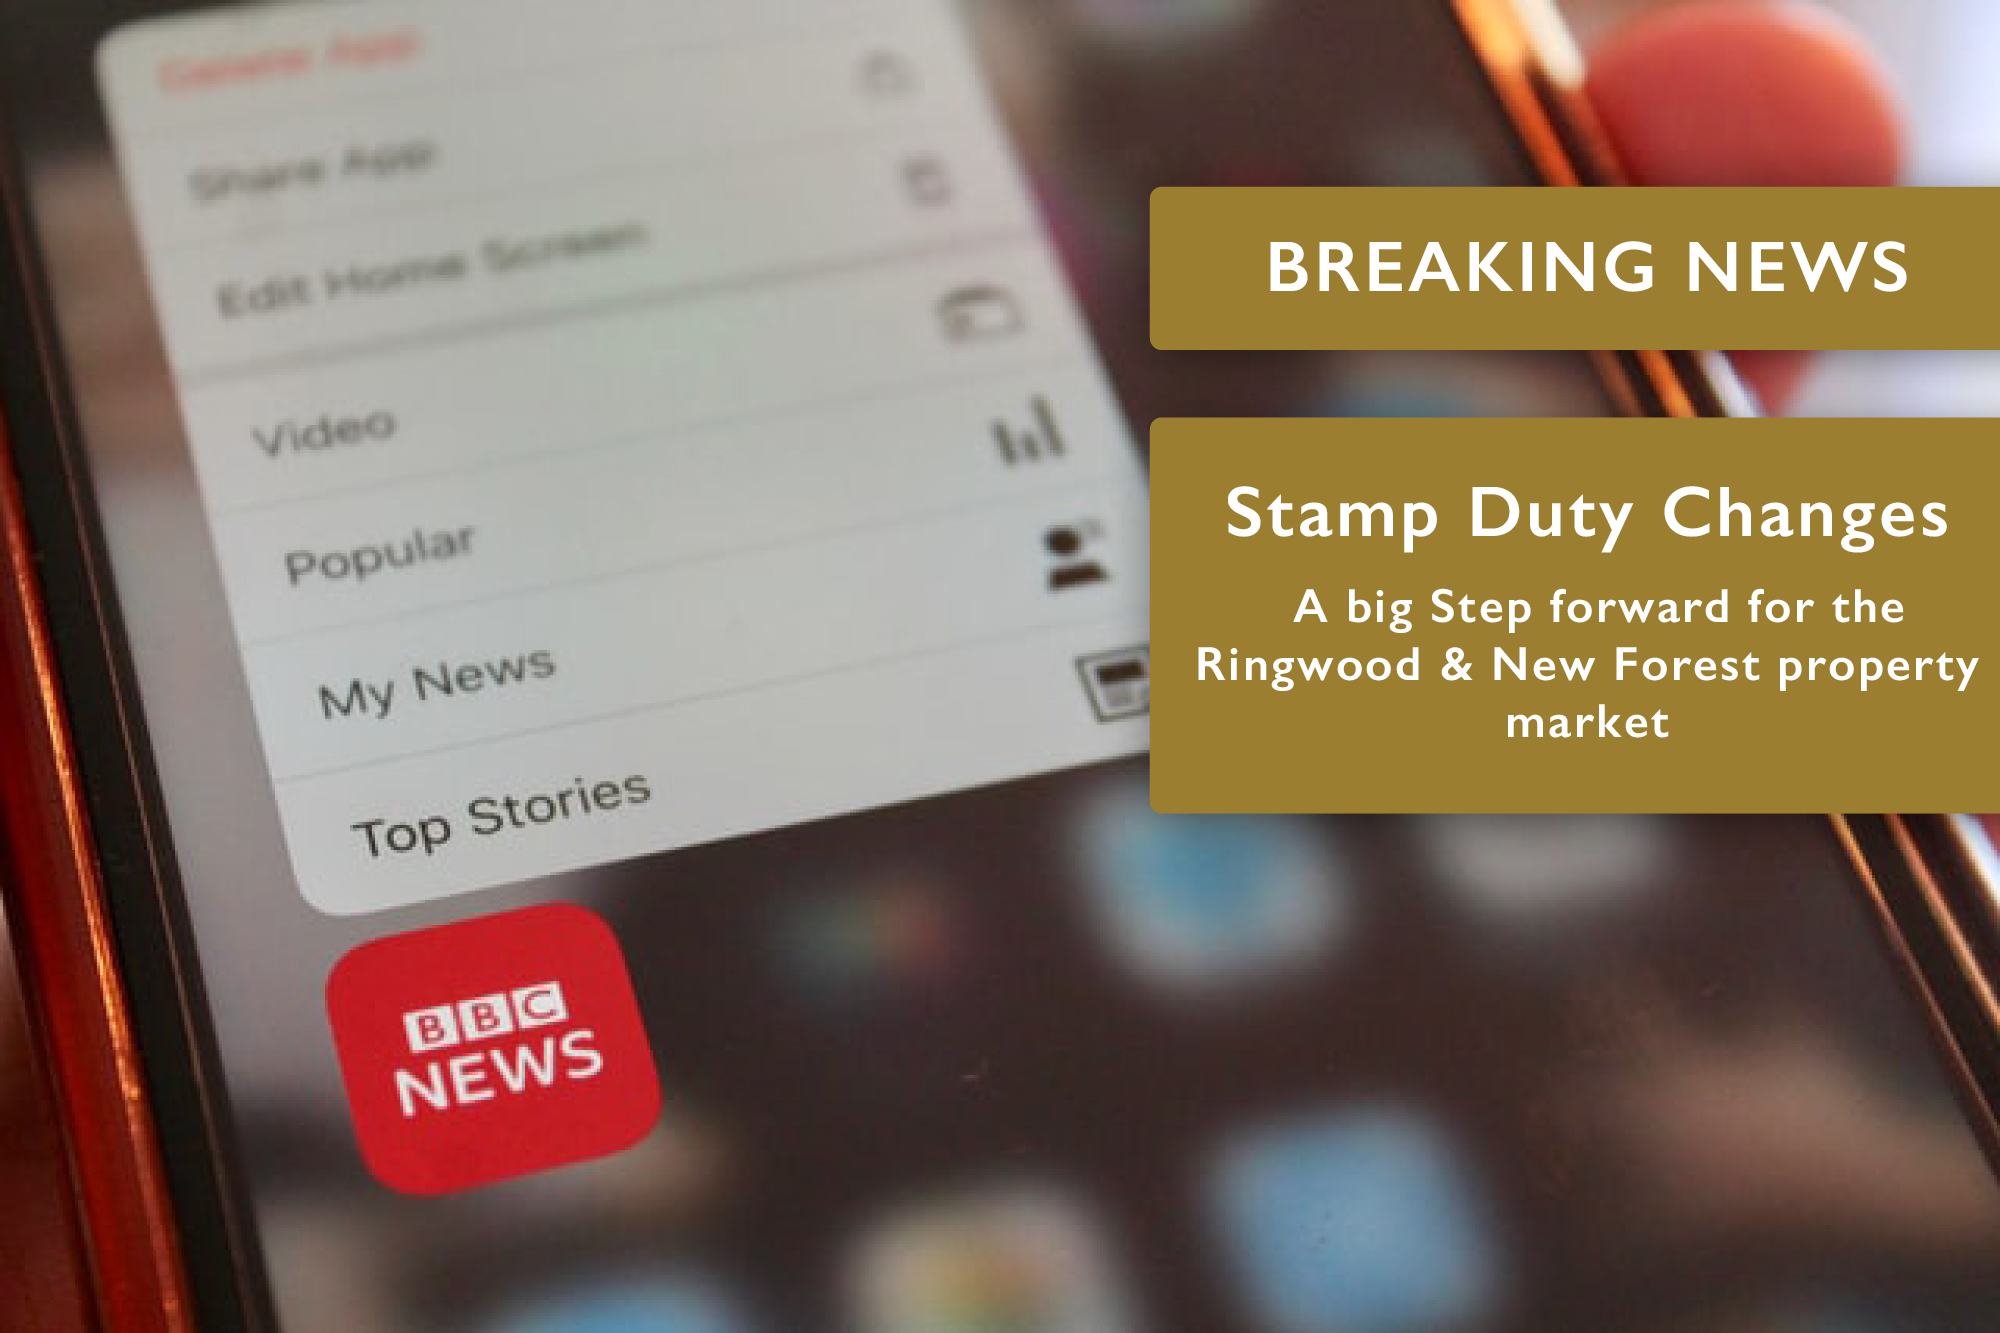 Stamp Duty Changes – A big Step forward for the Ringwood & New Forest property market